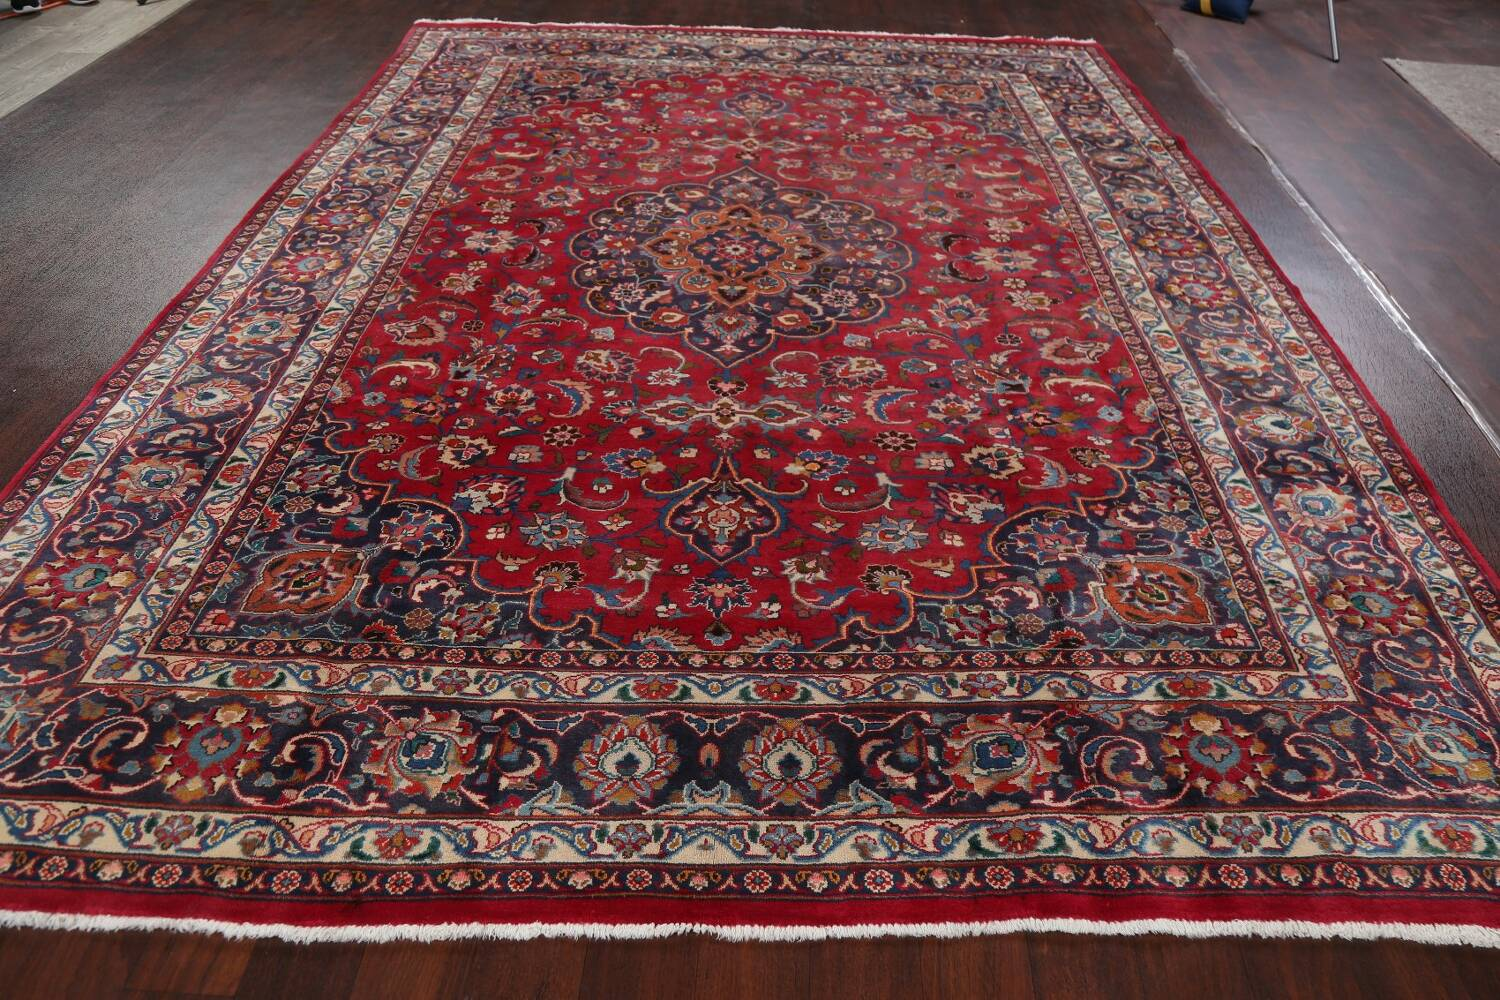 Vintage Floral Mashad Persian Red Area Rug 8x11 image 16